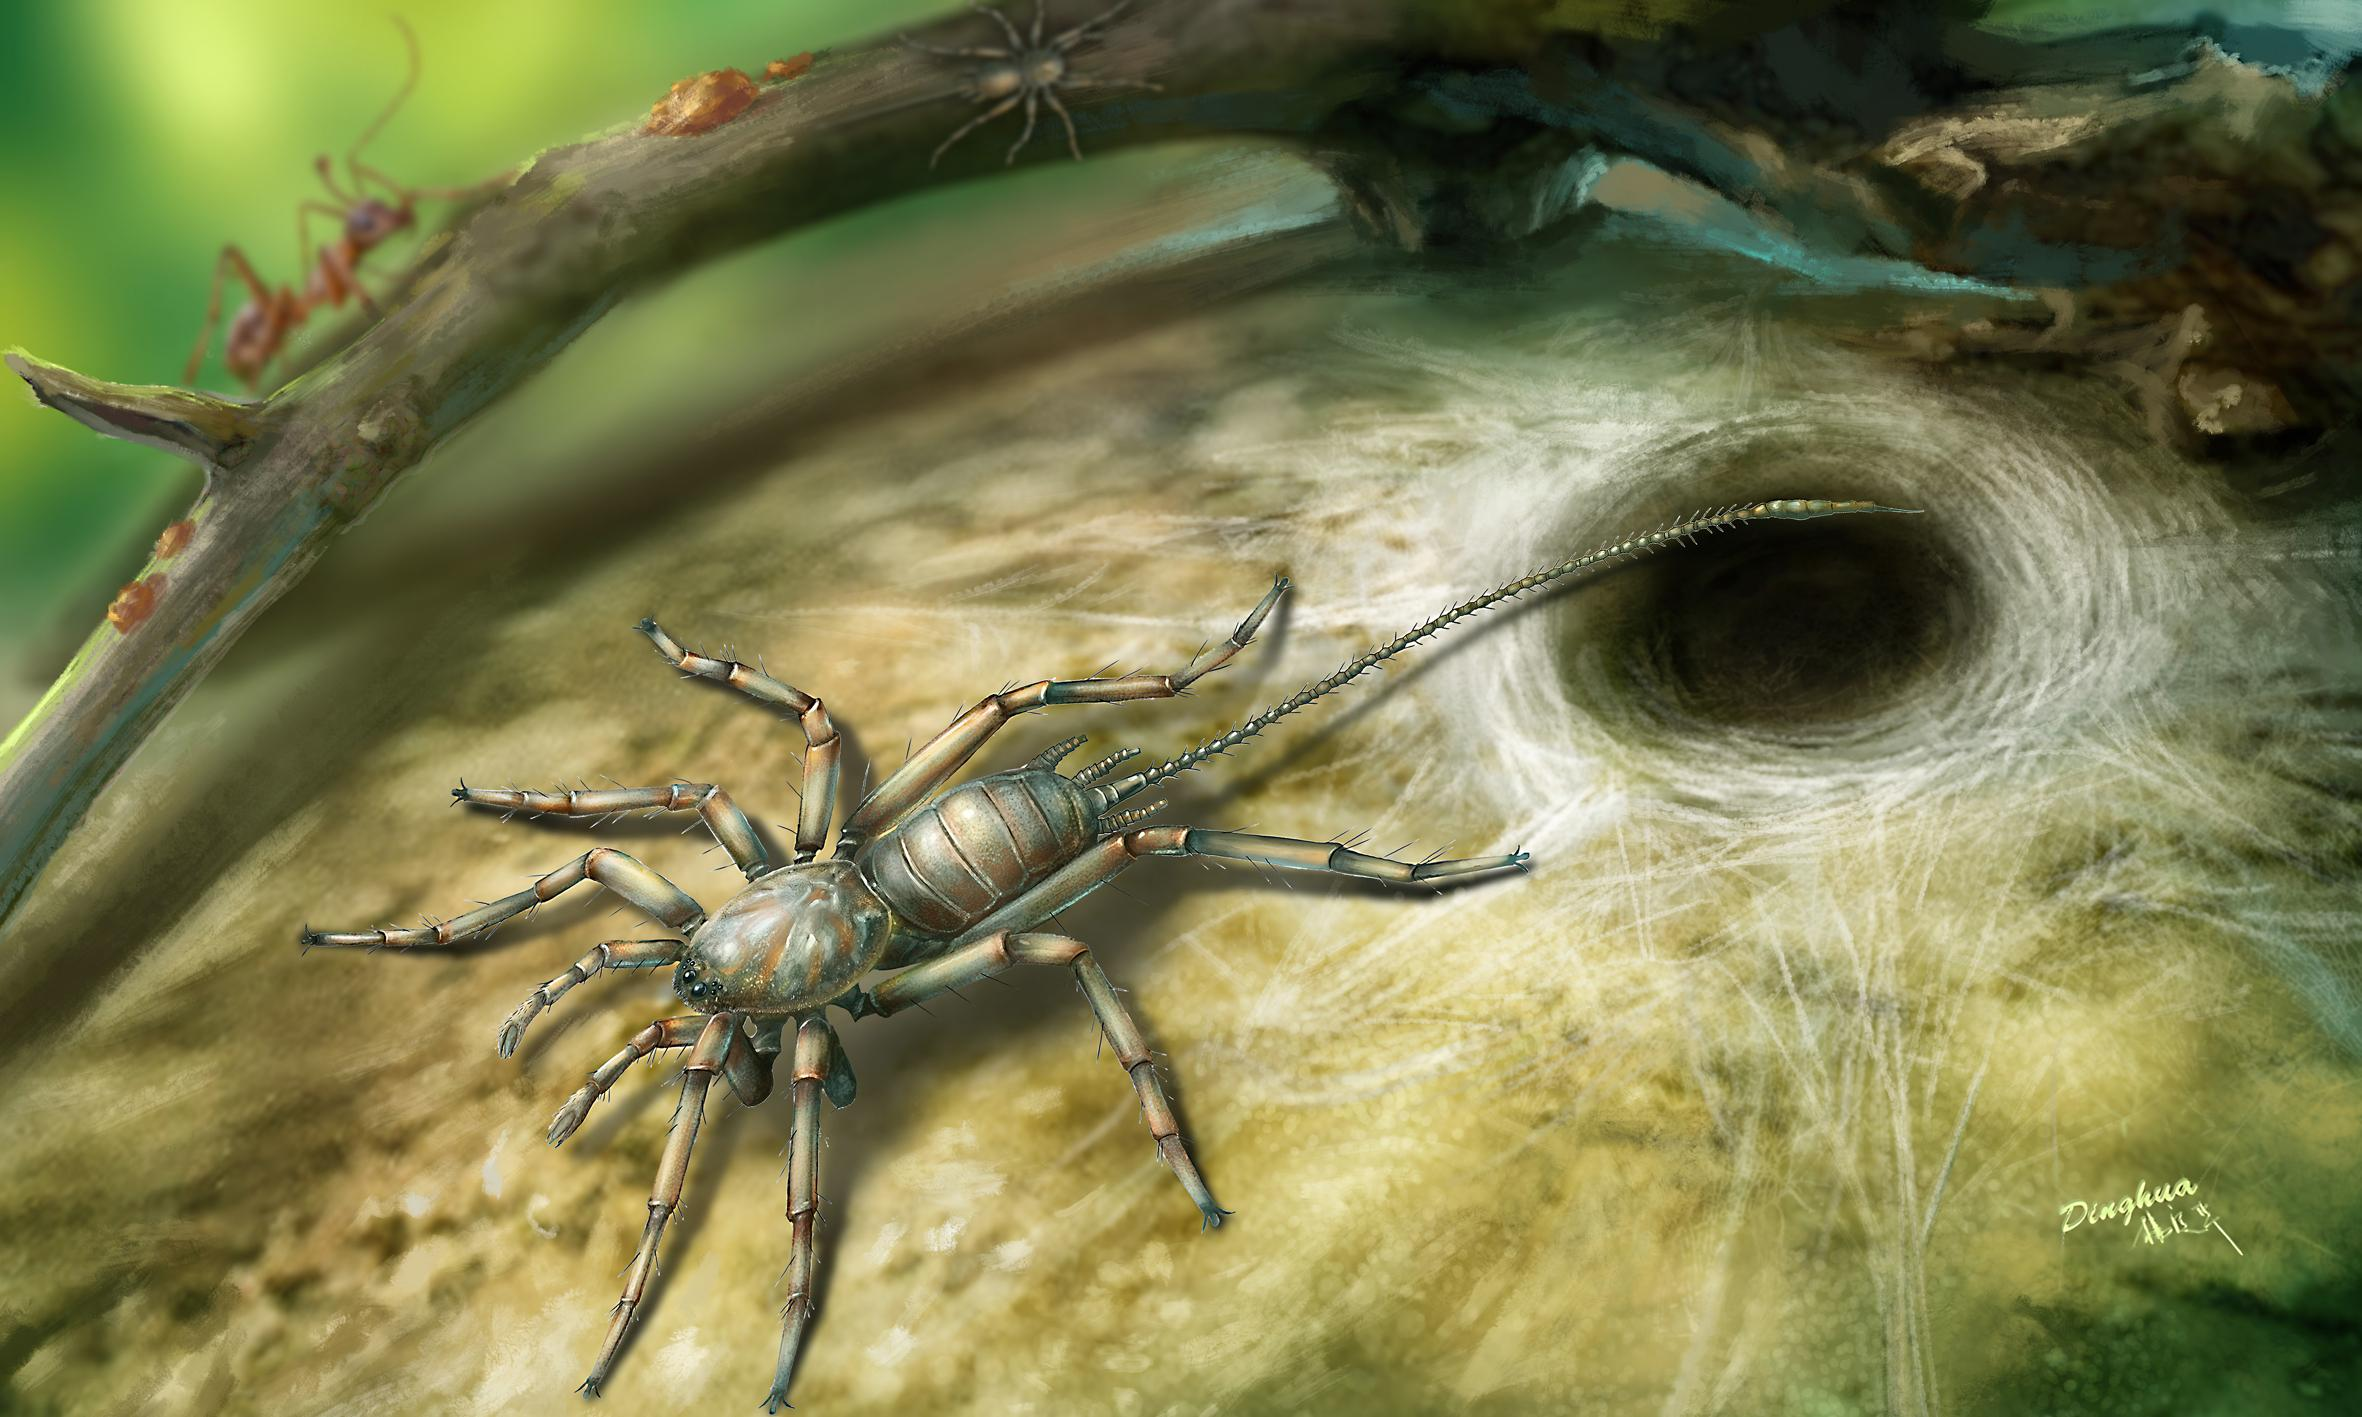 Very creepy crawlies: 'proto-spiders' with long tails discovered in amber